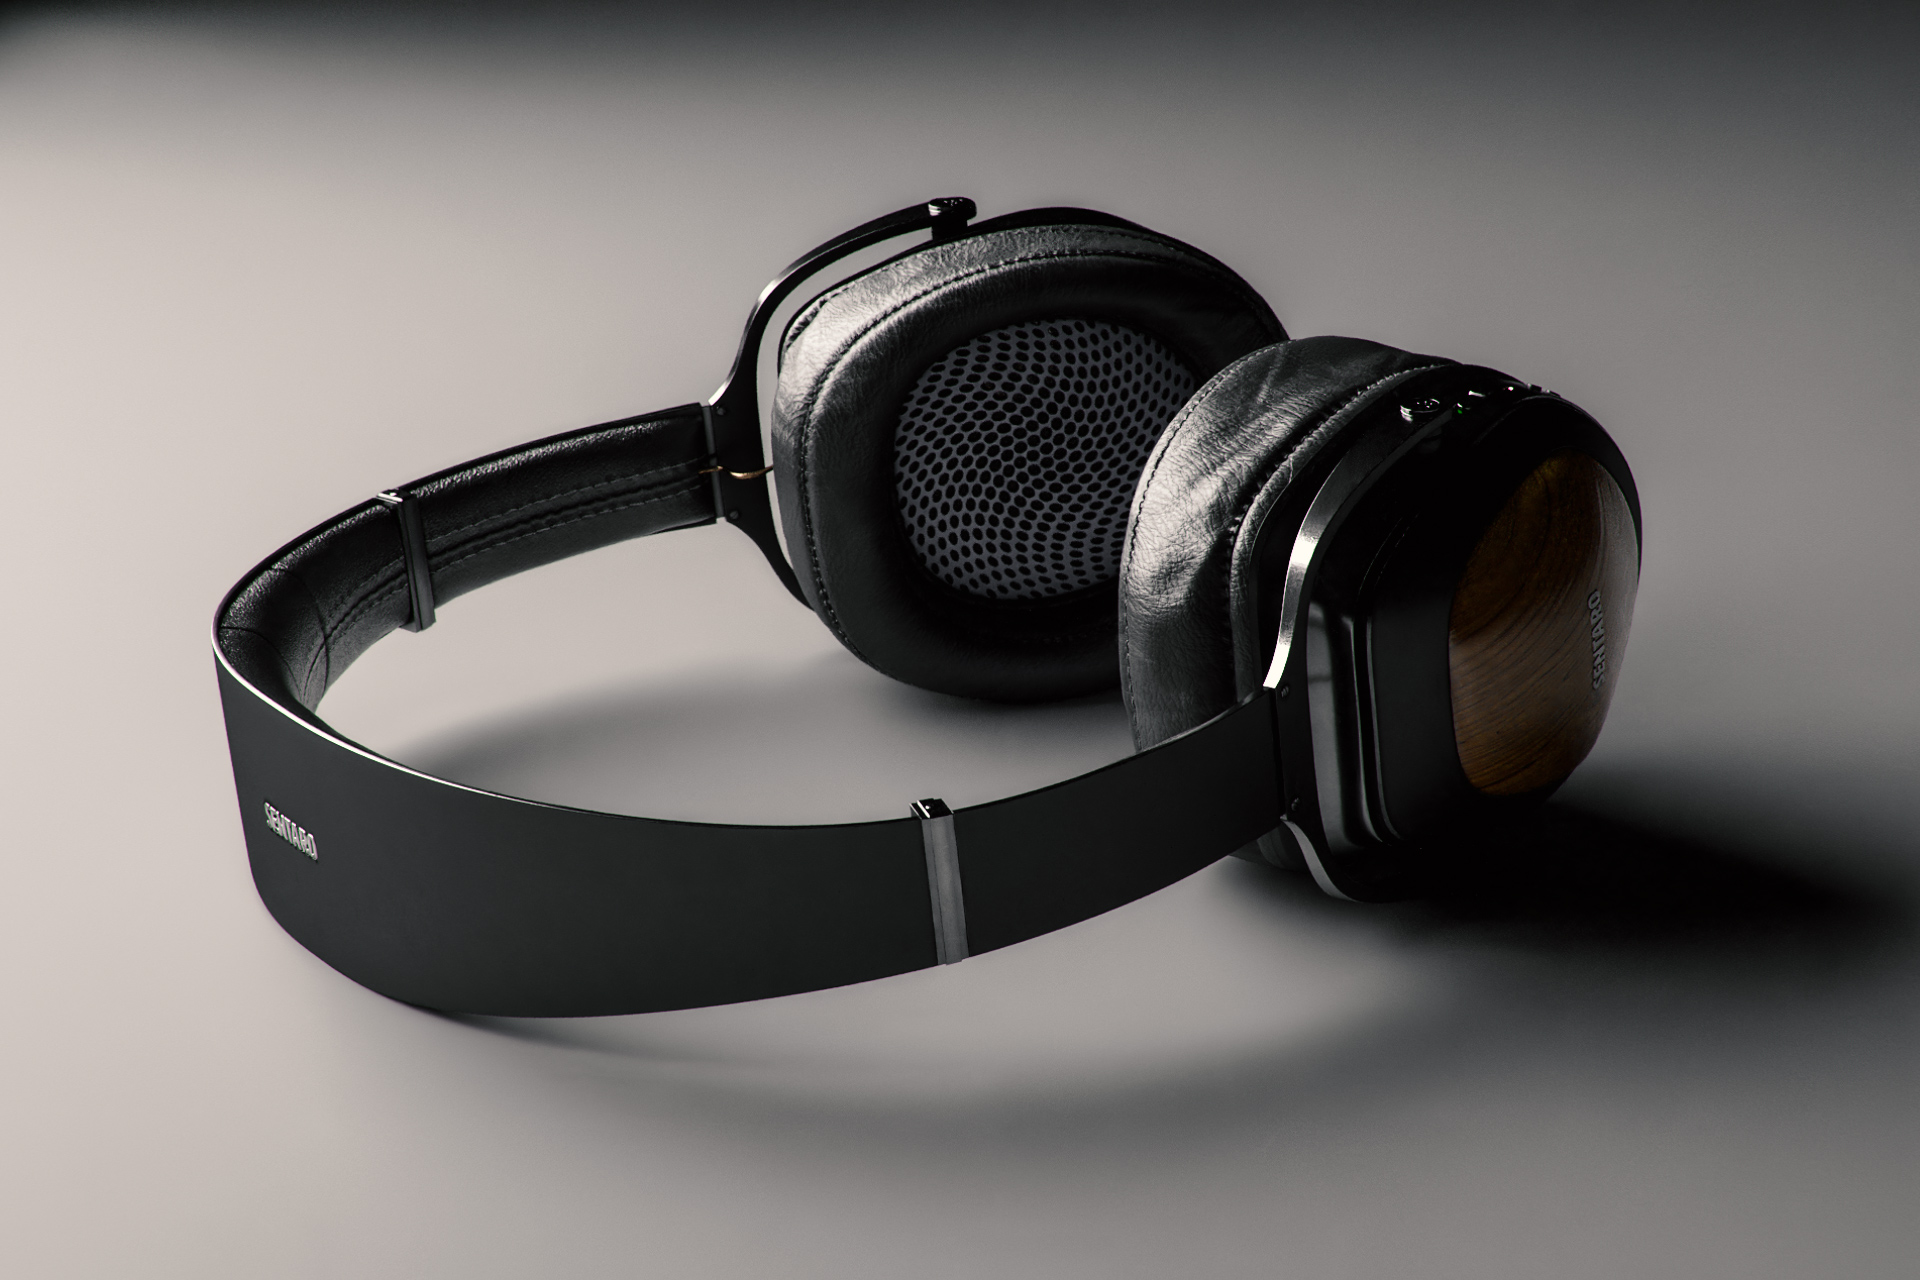 Example of a rim light illuminating a 3d headphone model